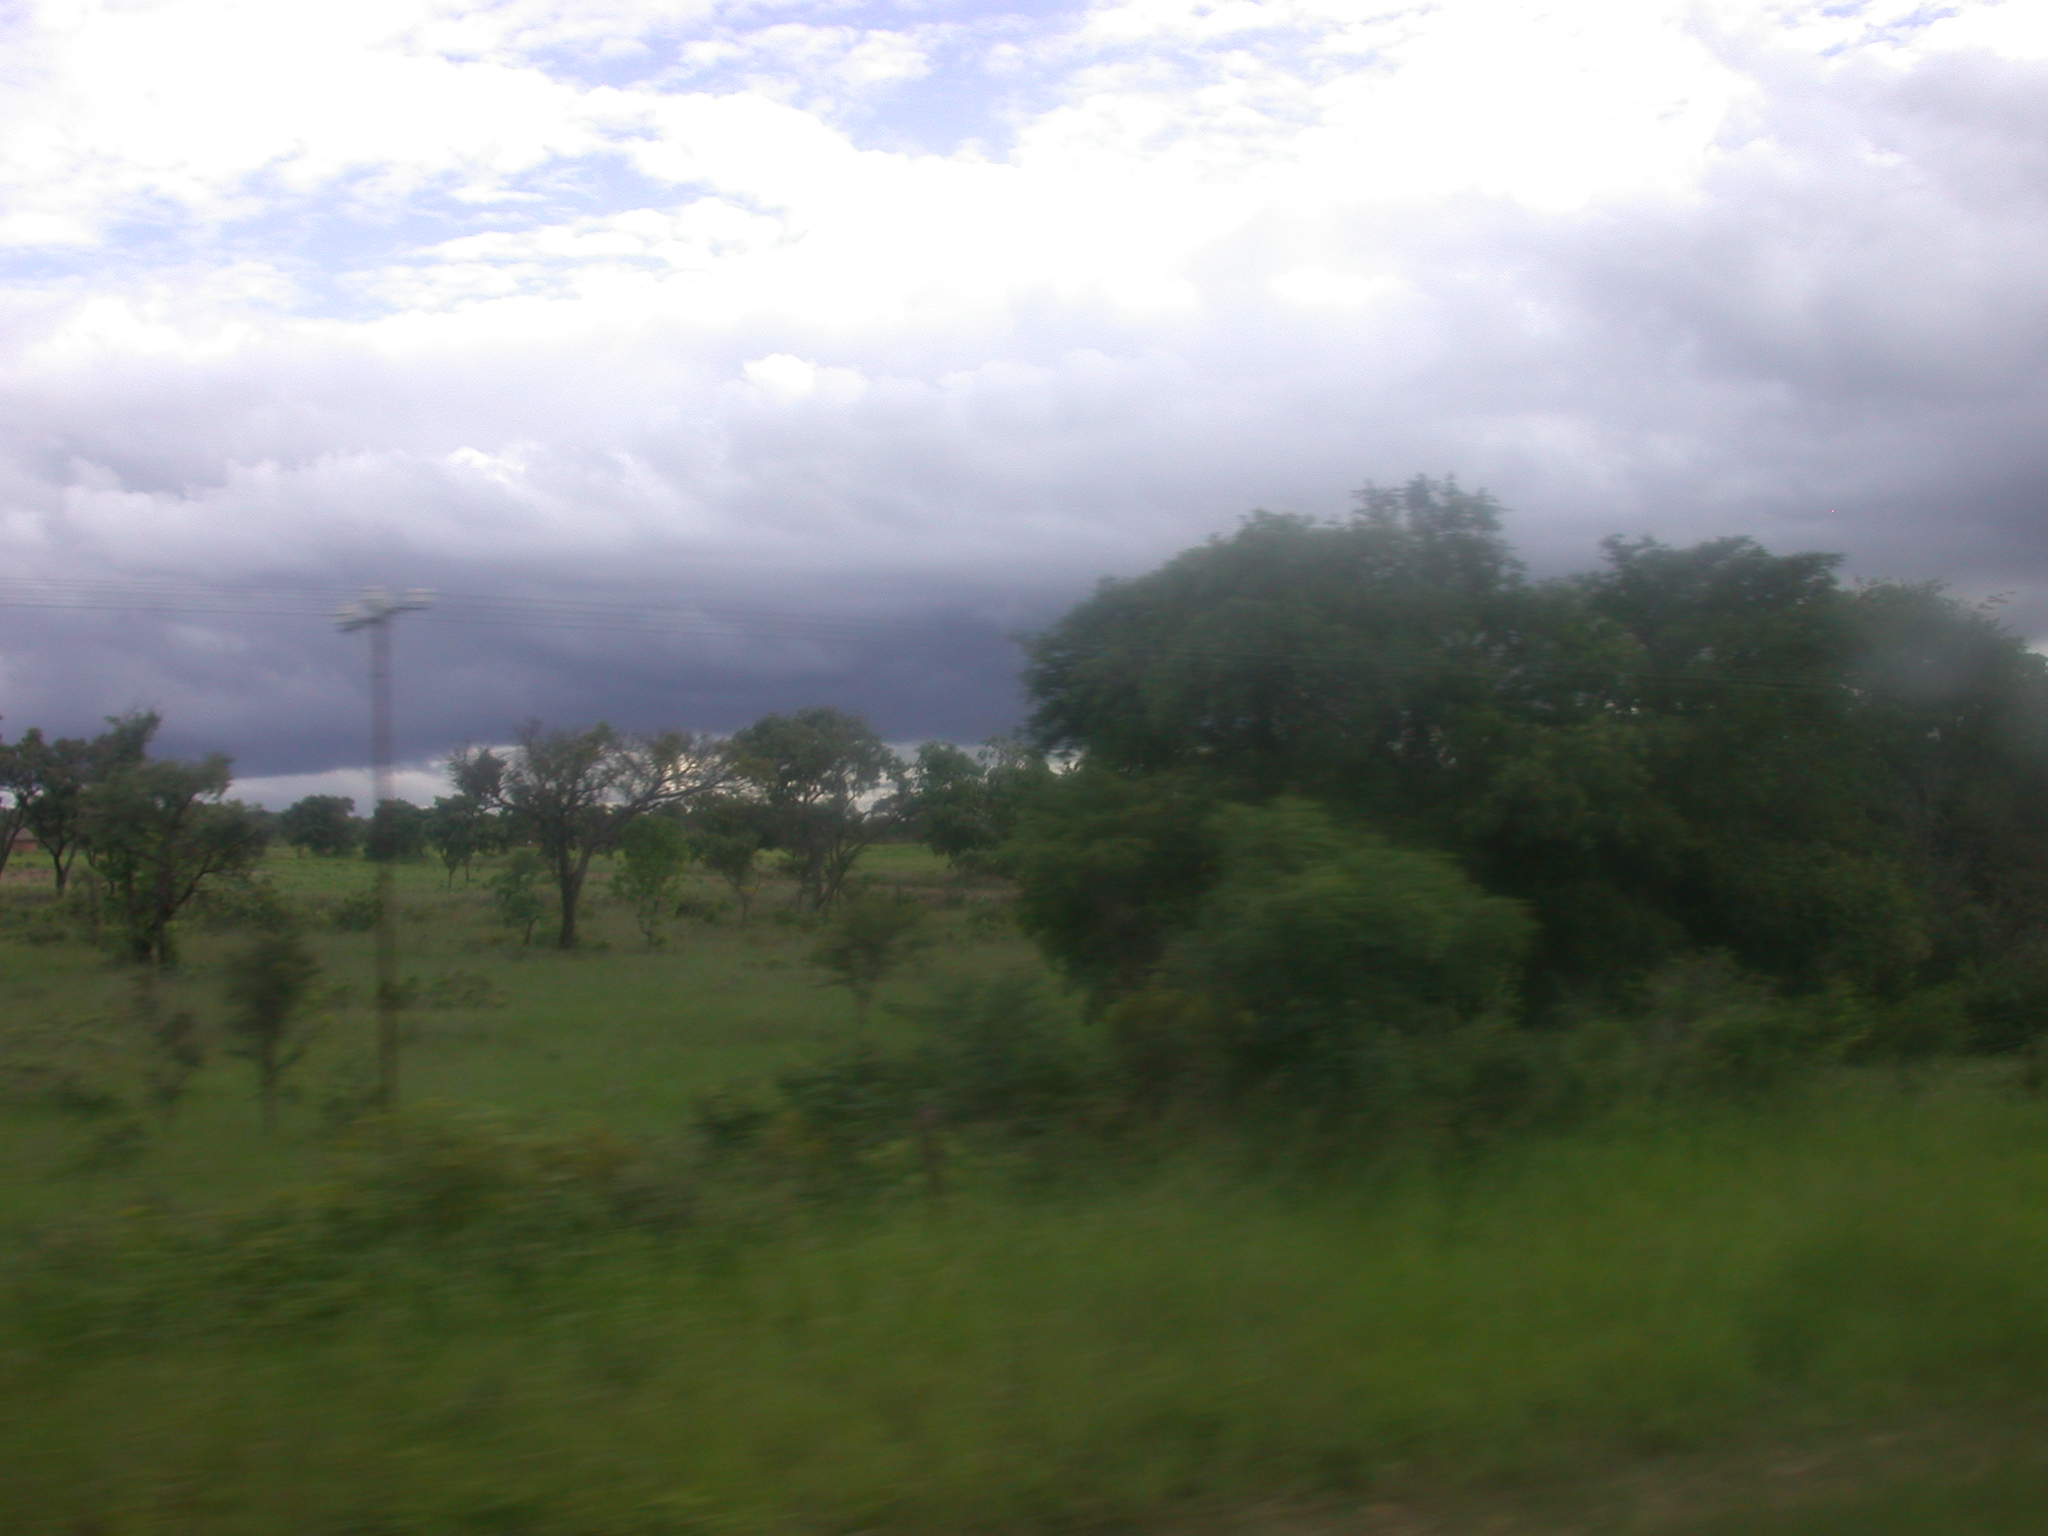 Landscape and Cloudy Sky Between Harare and Masvingo, Zimbabwe